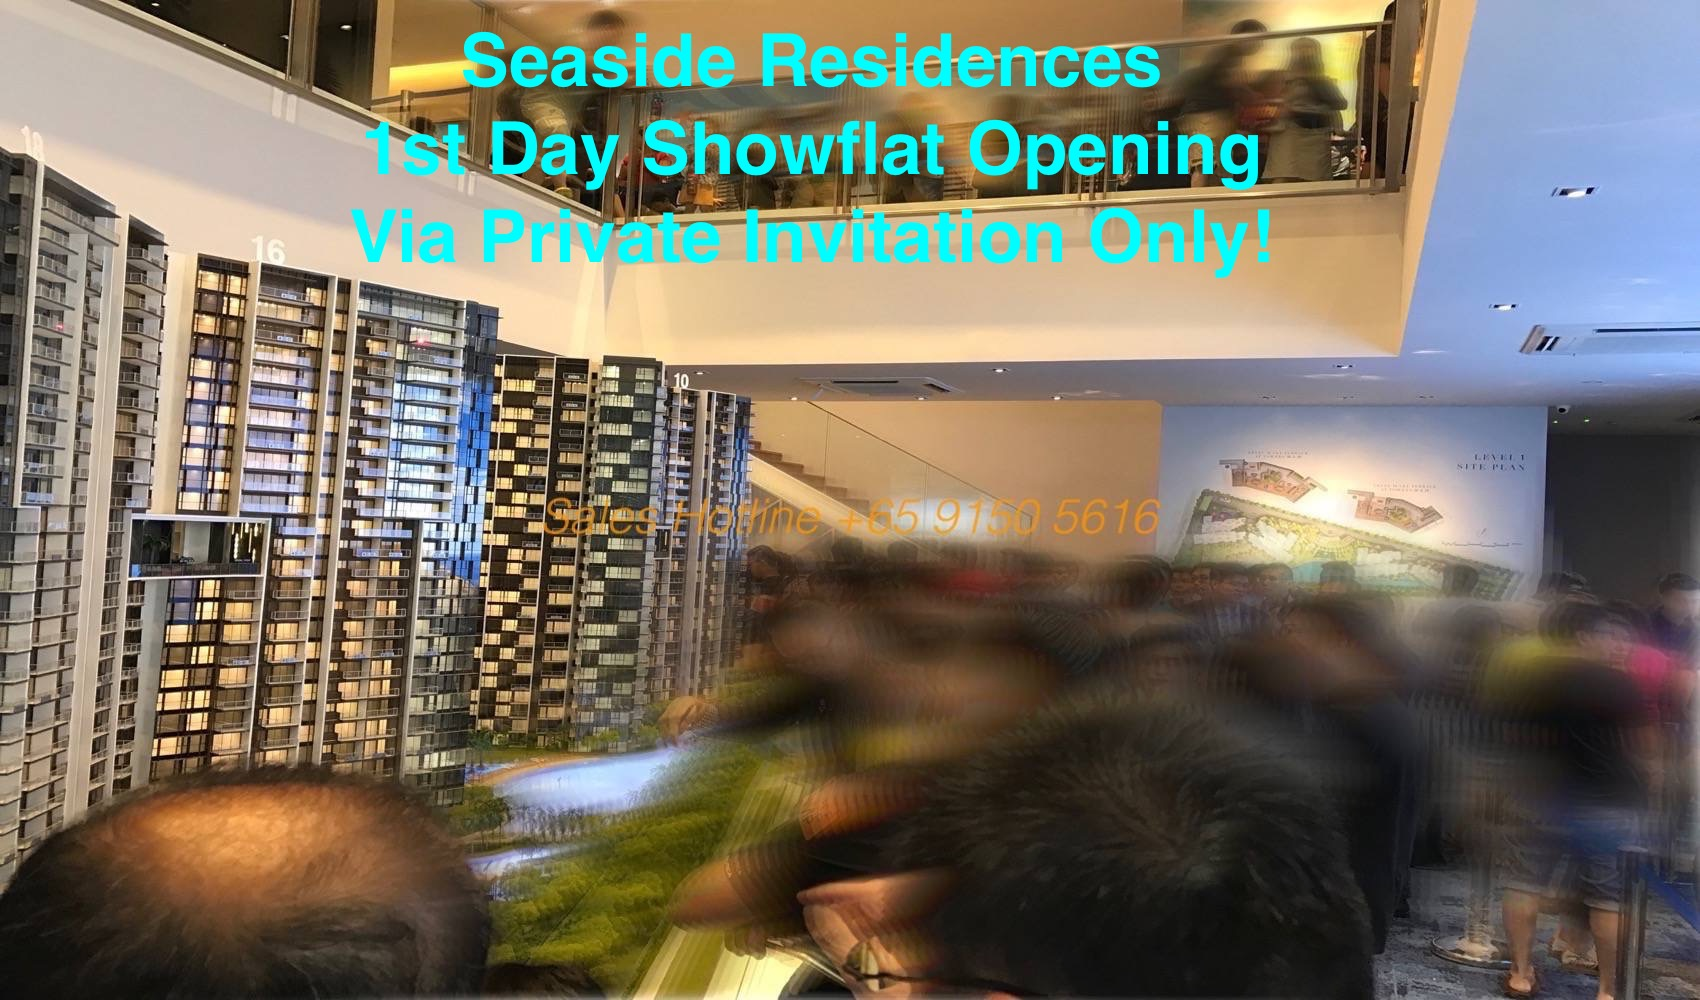 Seaside Residences Showflat Opening